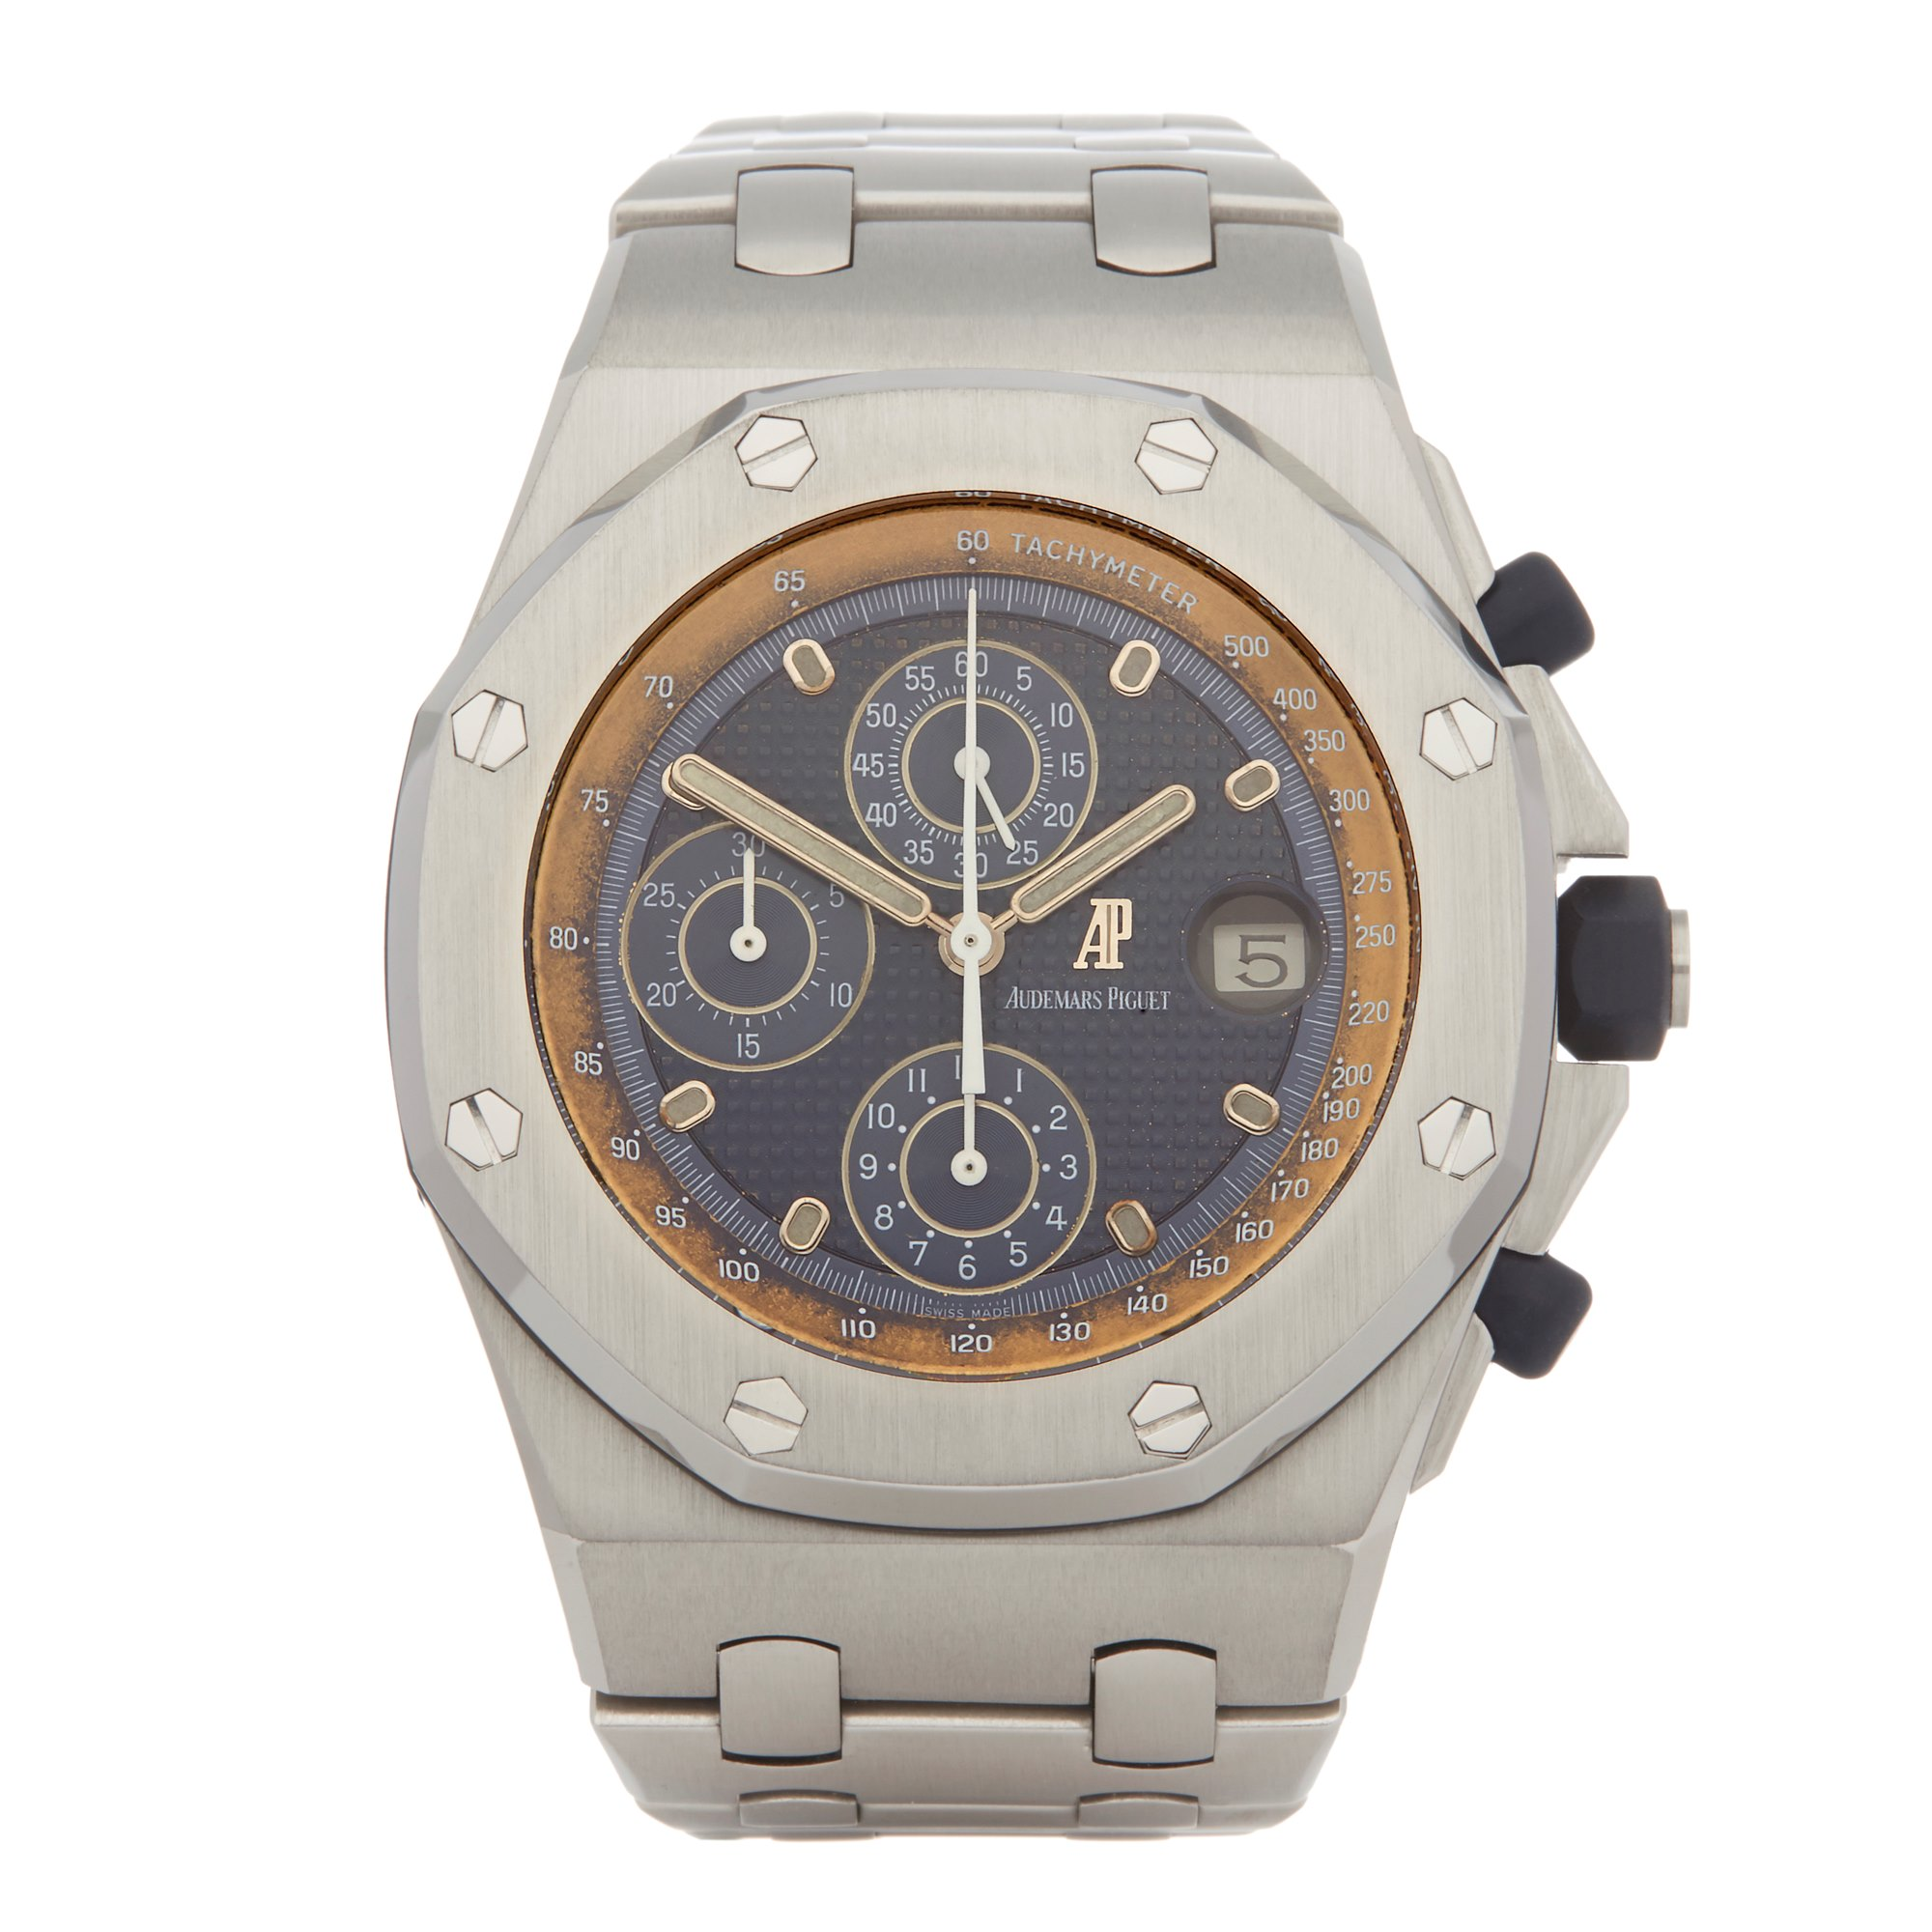 Audemars Piguet Royal Oak Offshore The Beast Chronograph Roestvrij Staal 25721ST/O/1000ST/01